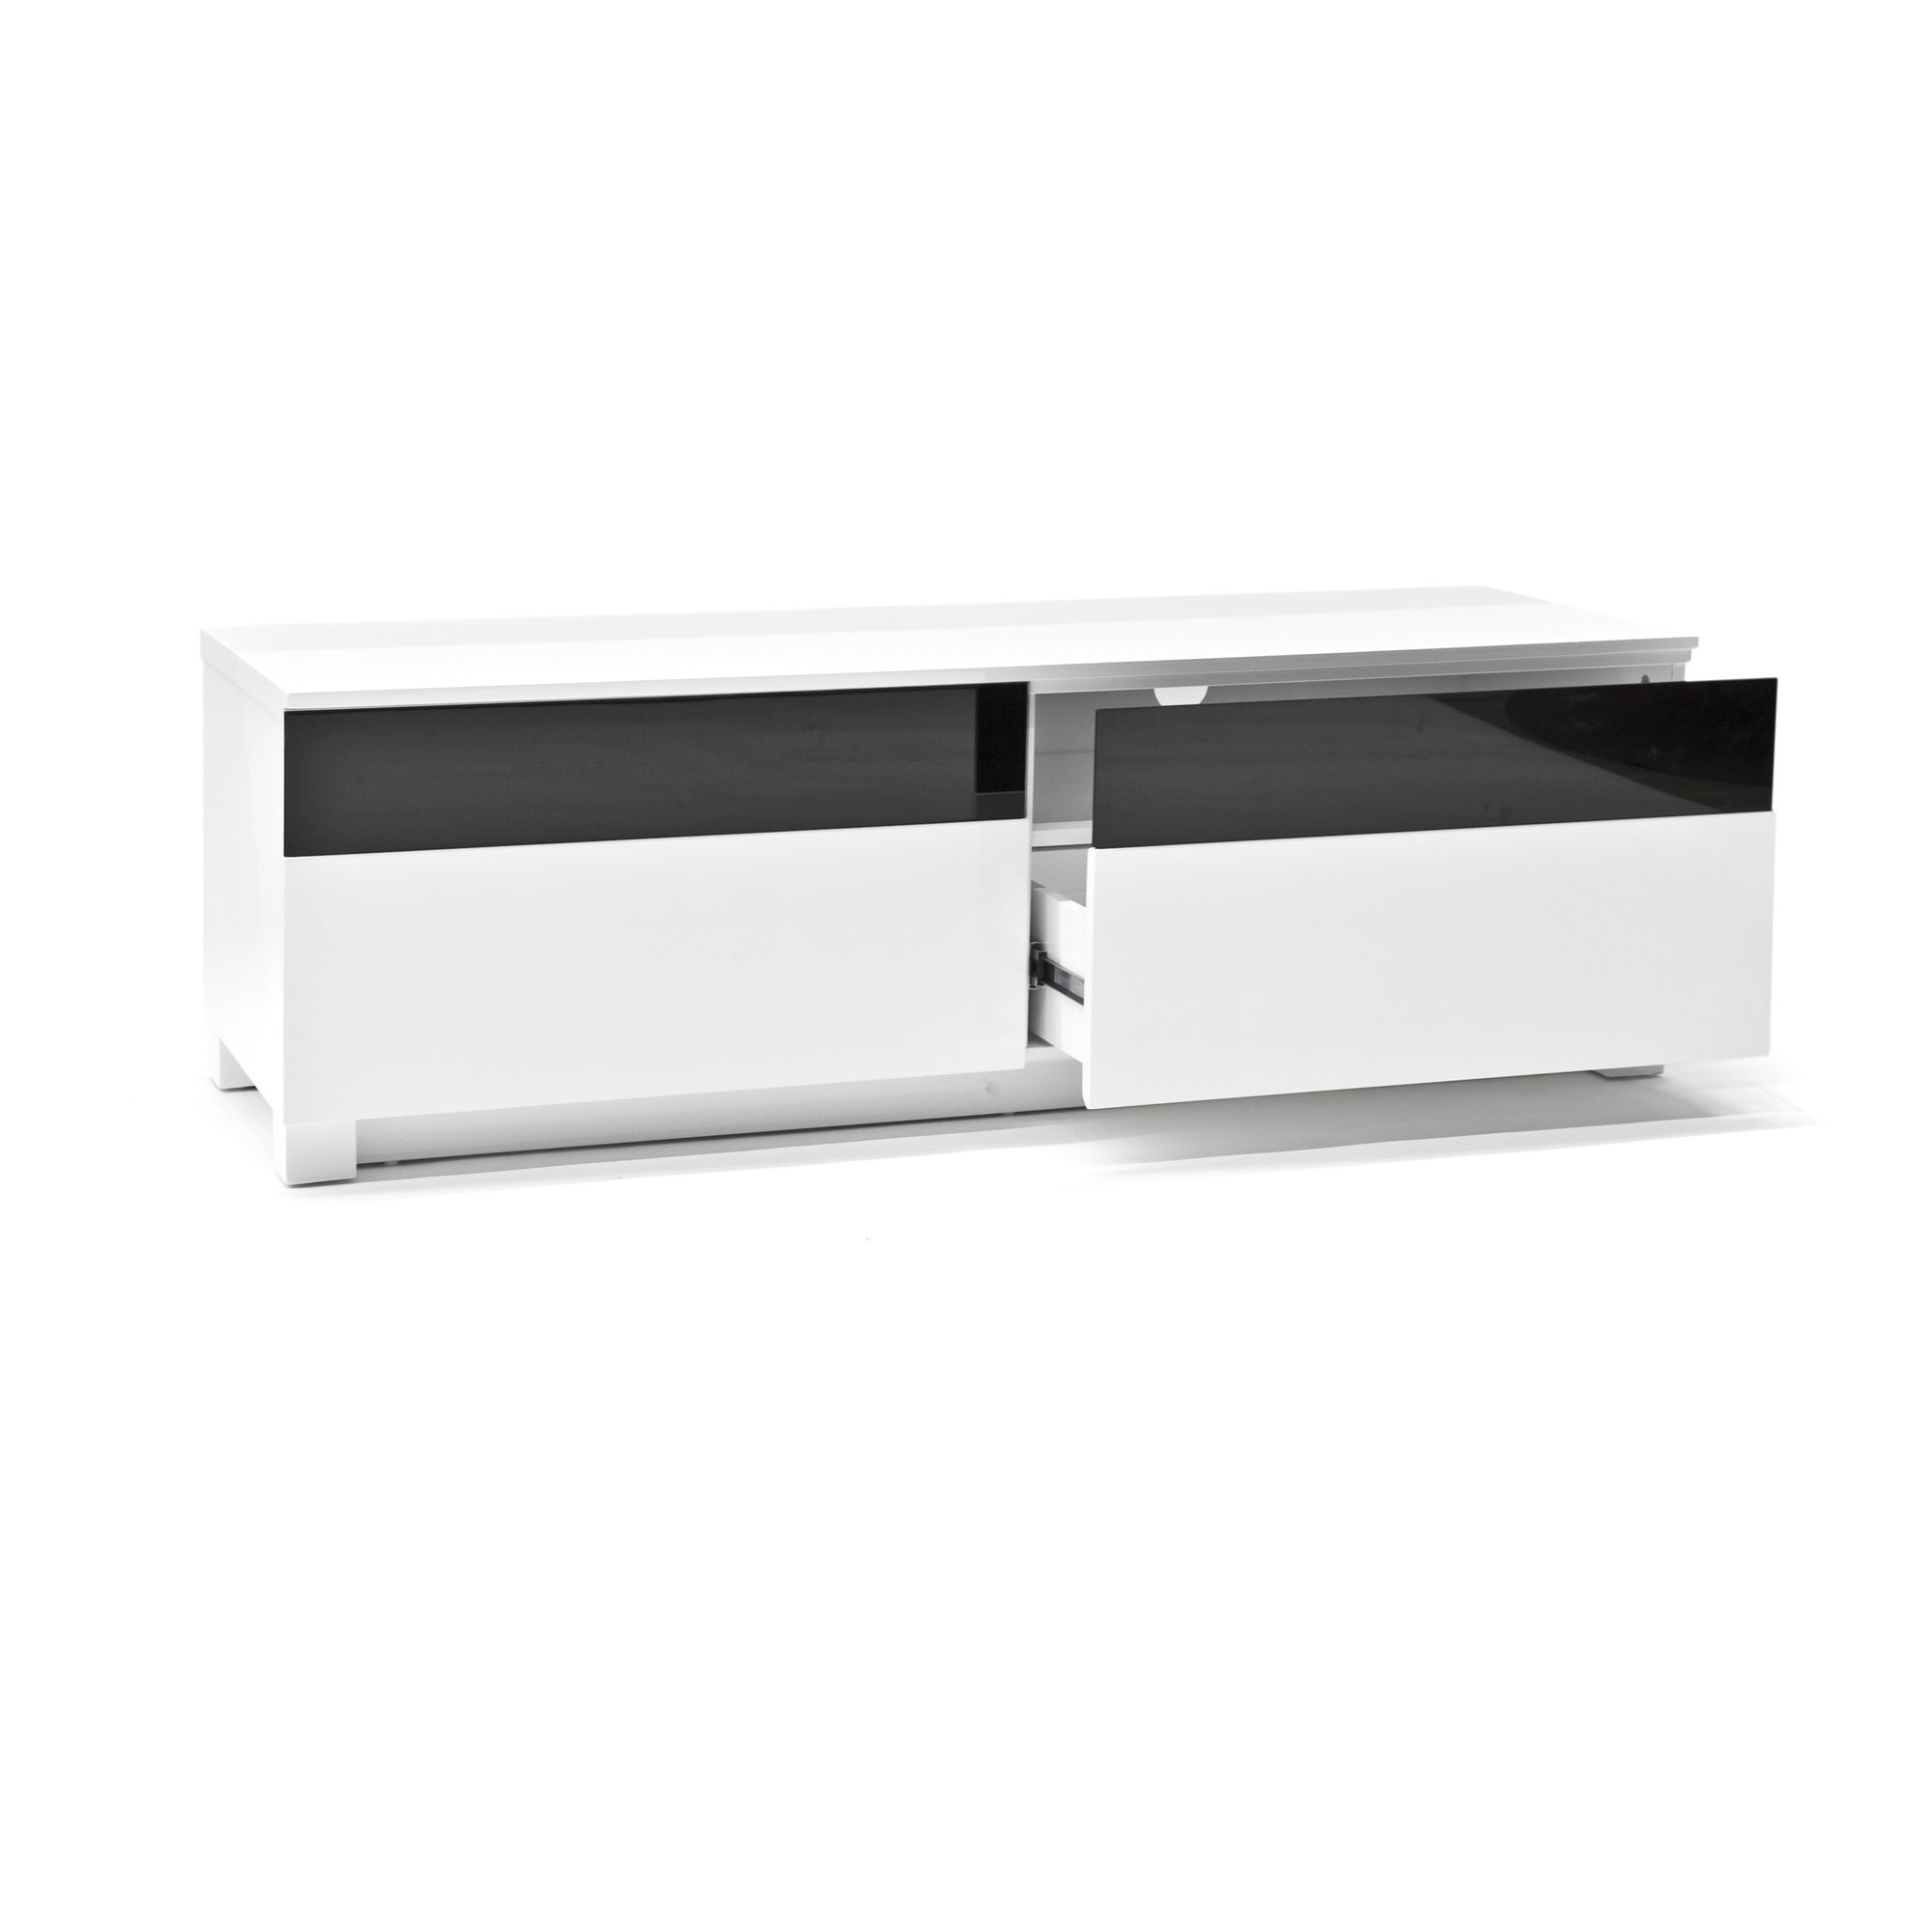 RGE Base 2 Drawers Multi-Media TV Storage and Display Unit - Lacquer White HiGloss at Tesco Direct